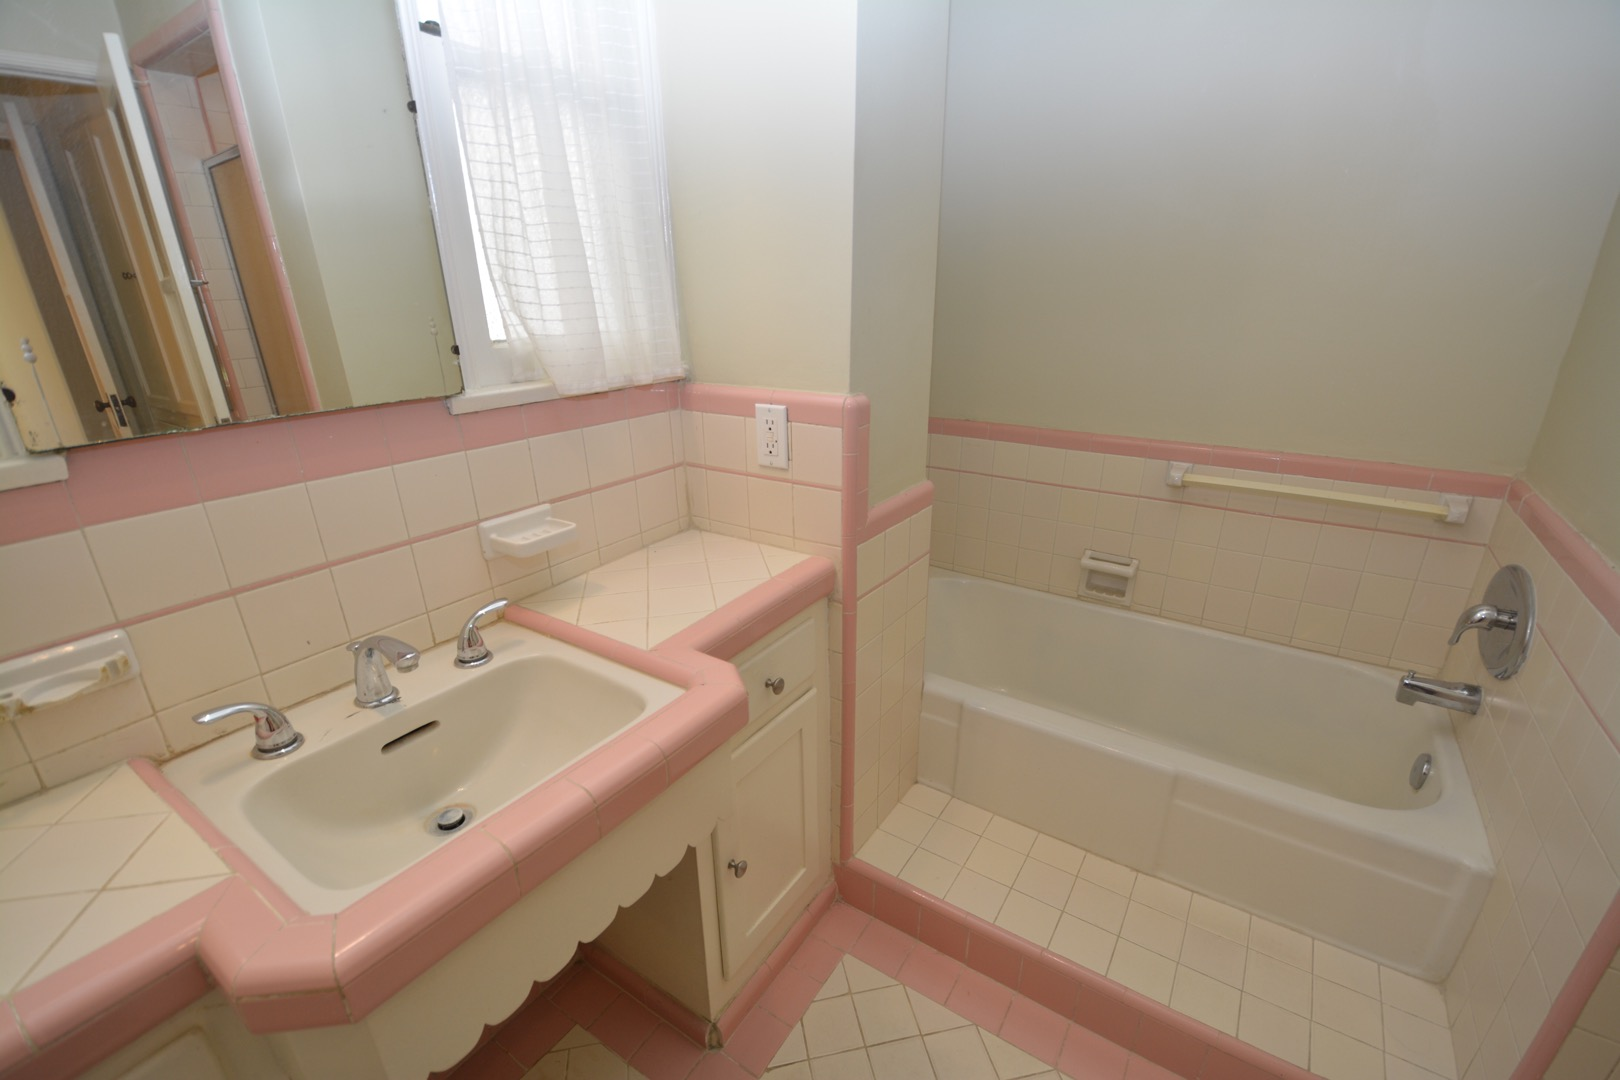 Bathroom is GREEN, NOT Pink! Same style.